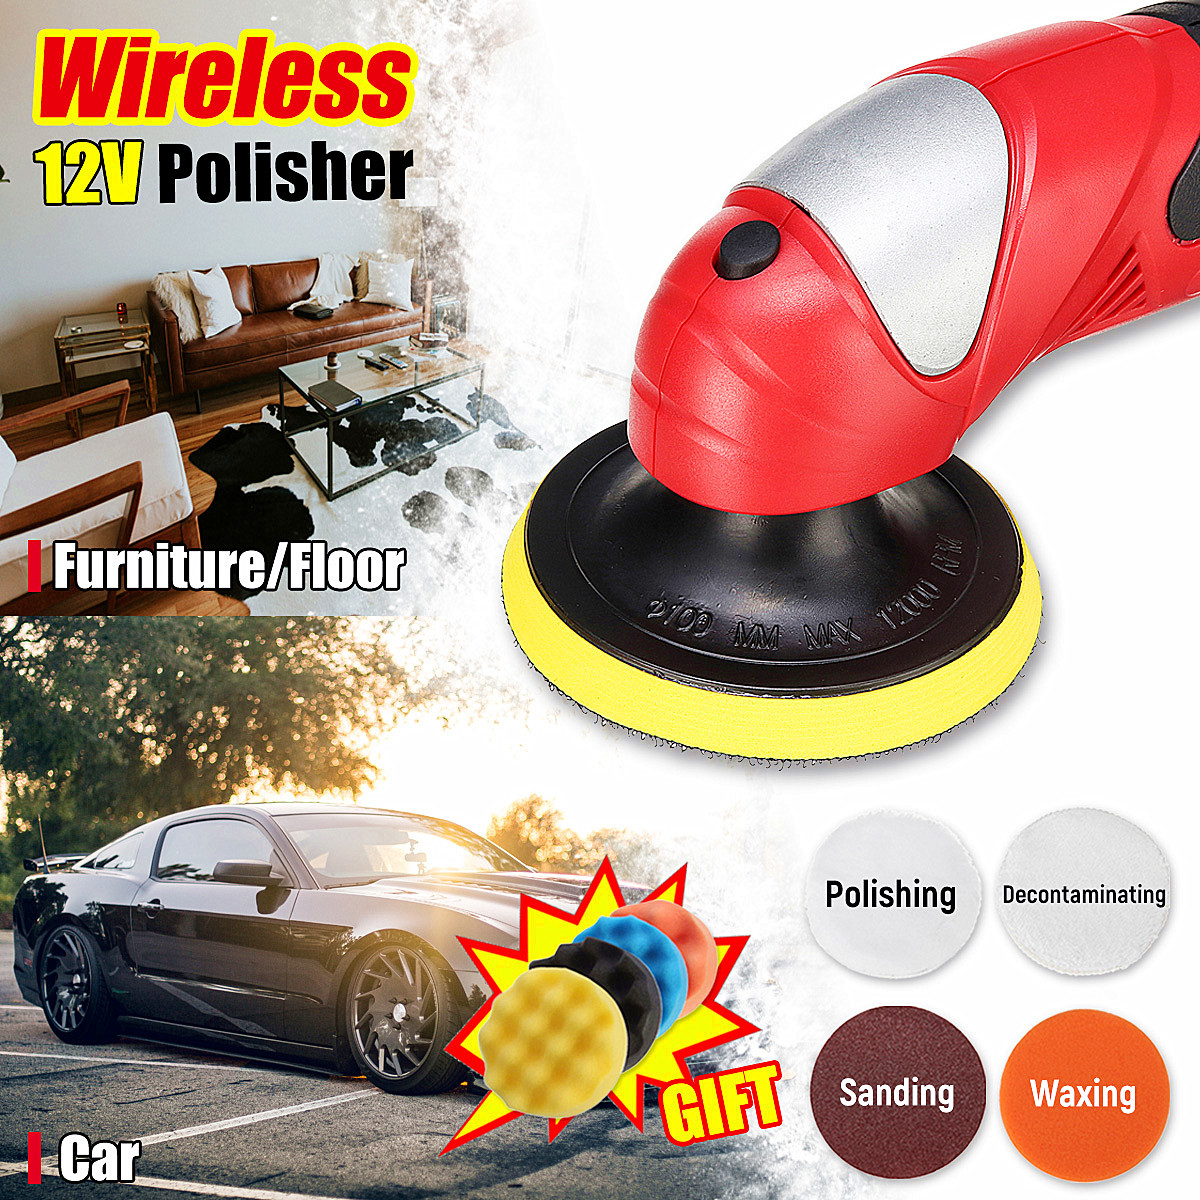 цена на 3000 RPM Compact Polisher Angle Grinder Sander Polishing Buffing For Car Furniture Floor Waxing Sanding Decontaminating